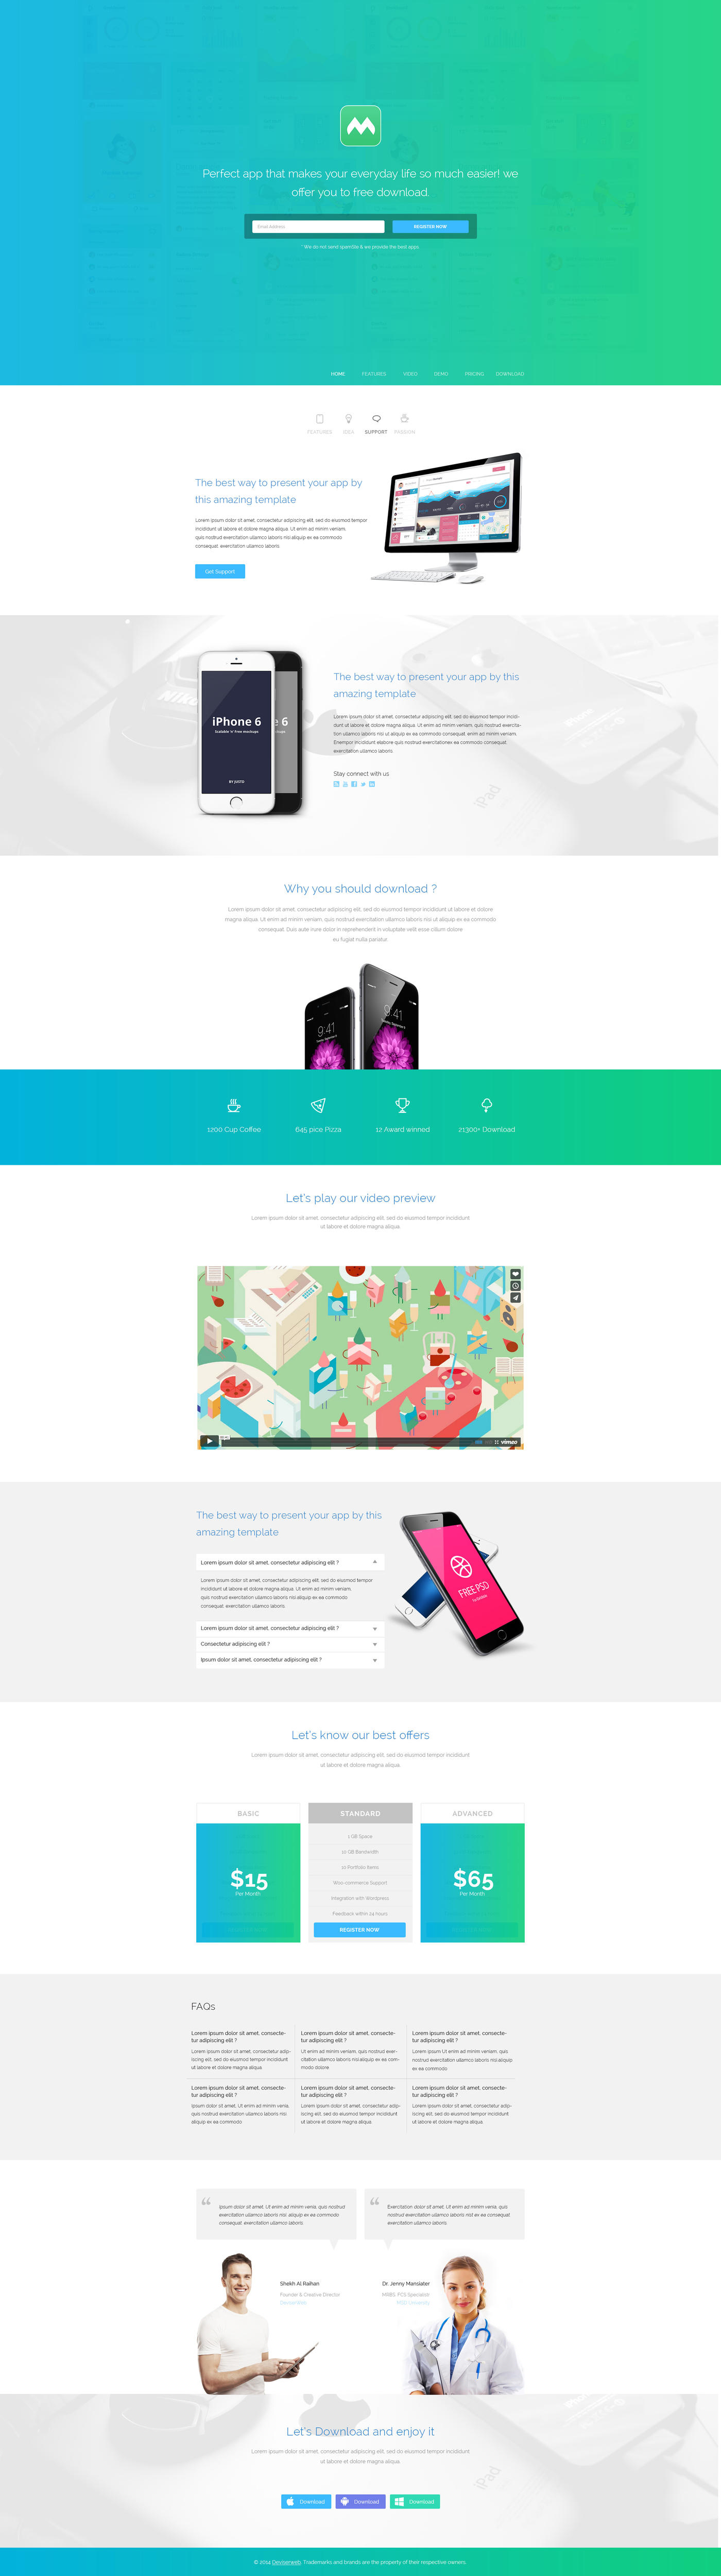 Premium Onepage Landing Page Design/Redesign by rtralrayhan - 64851